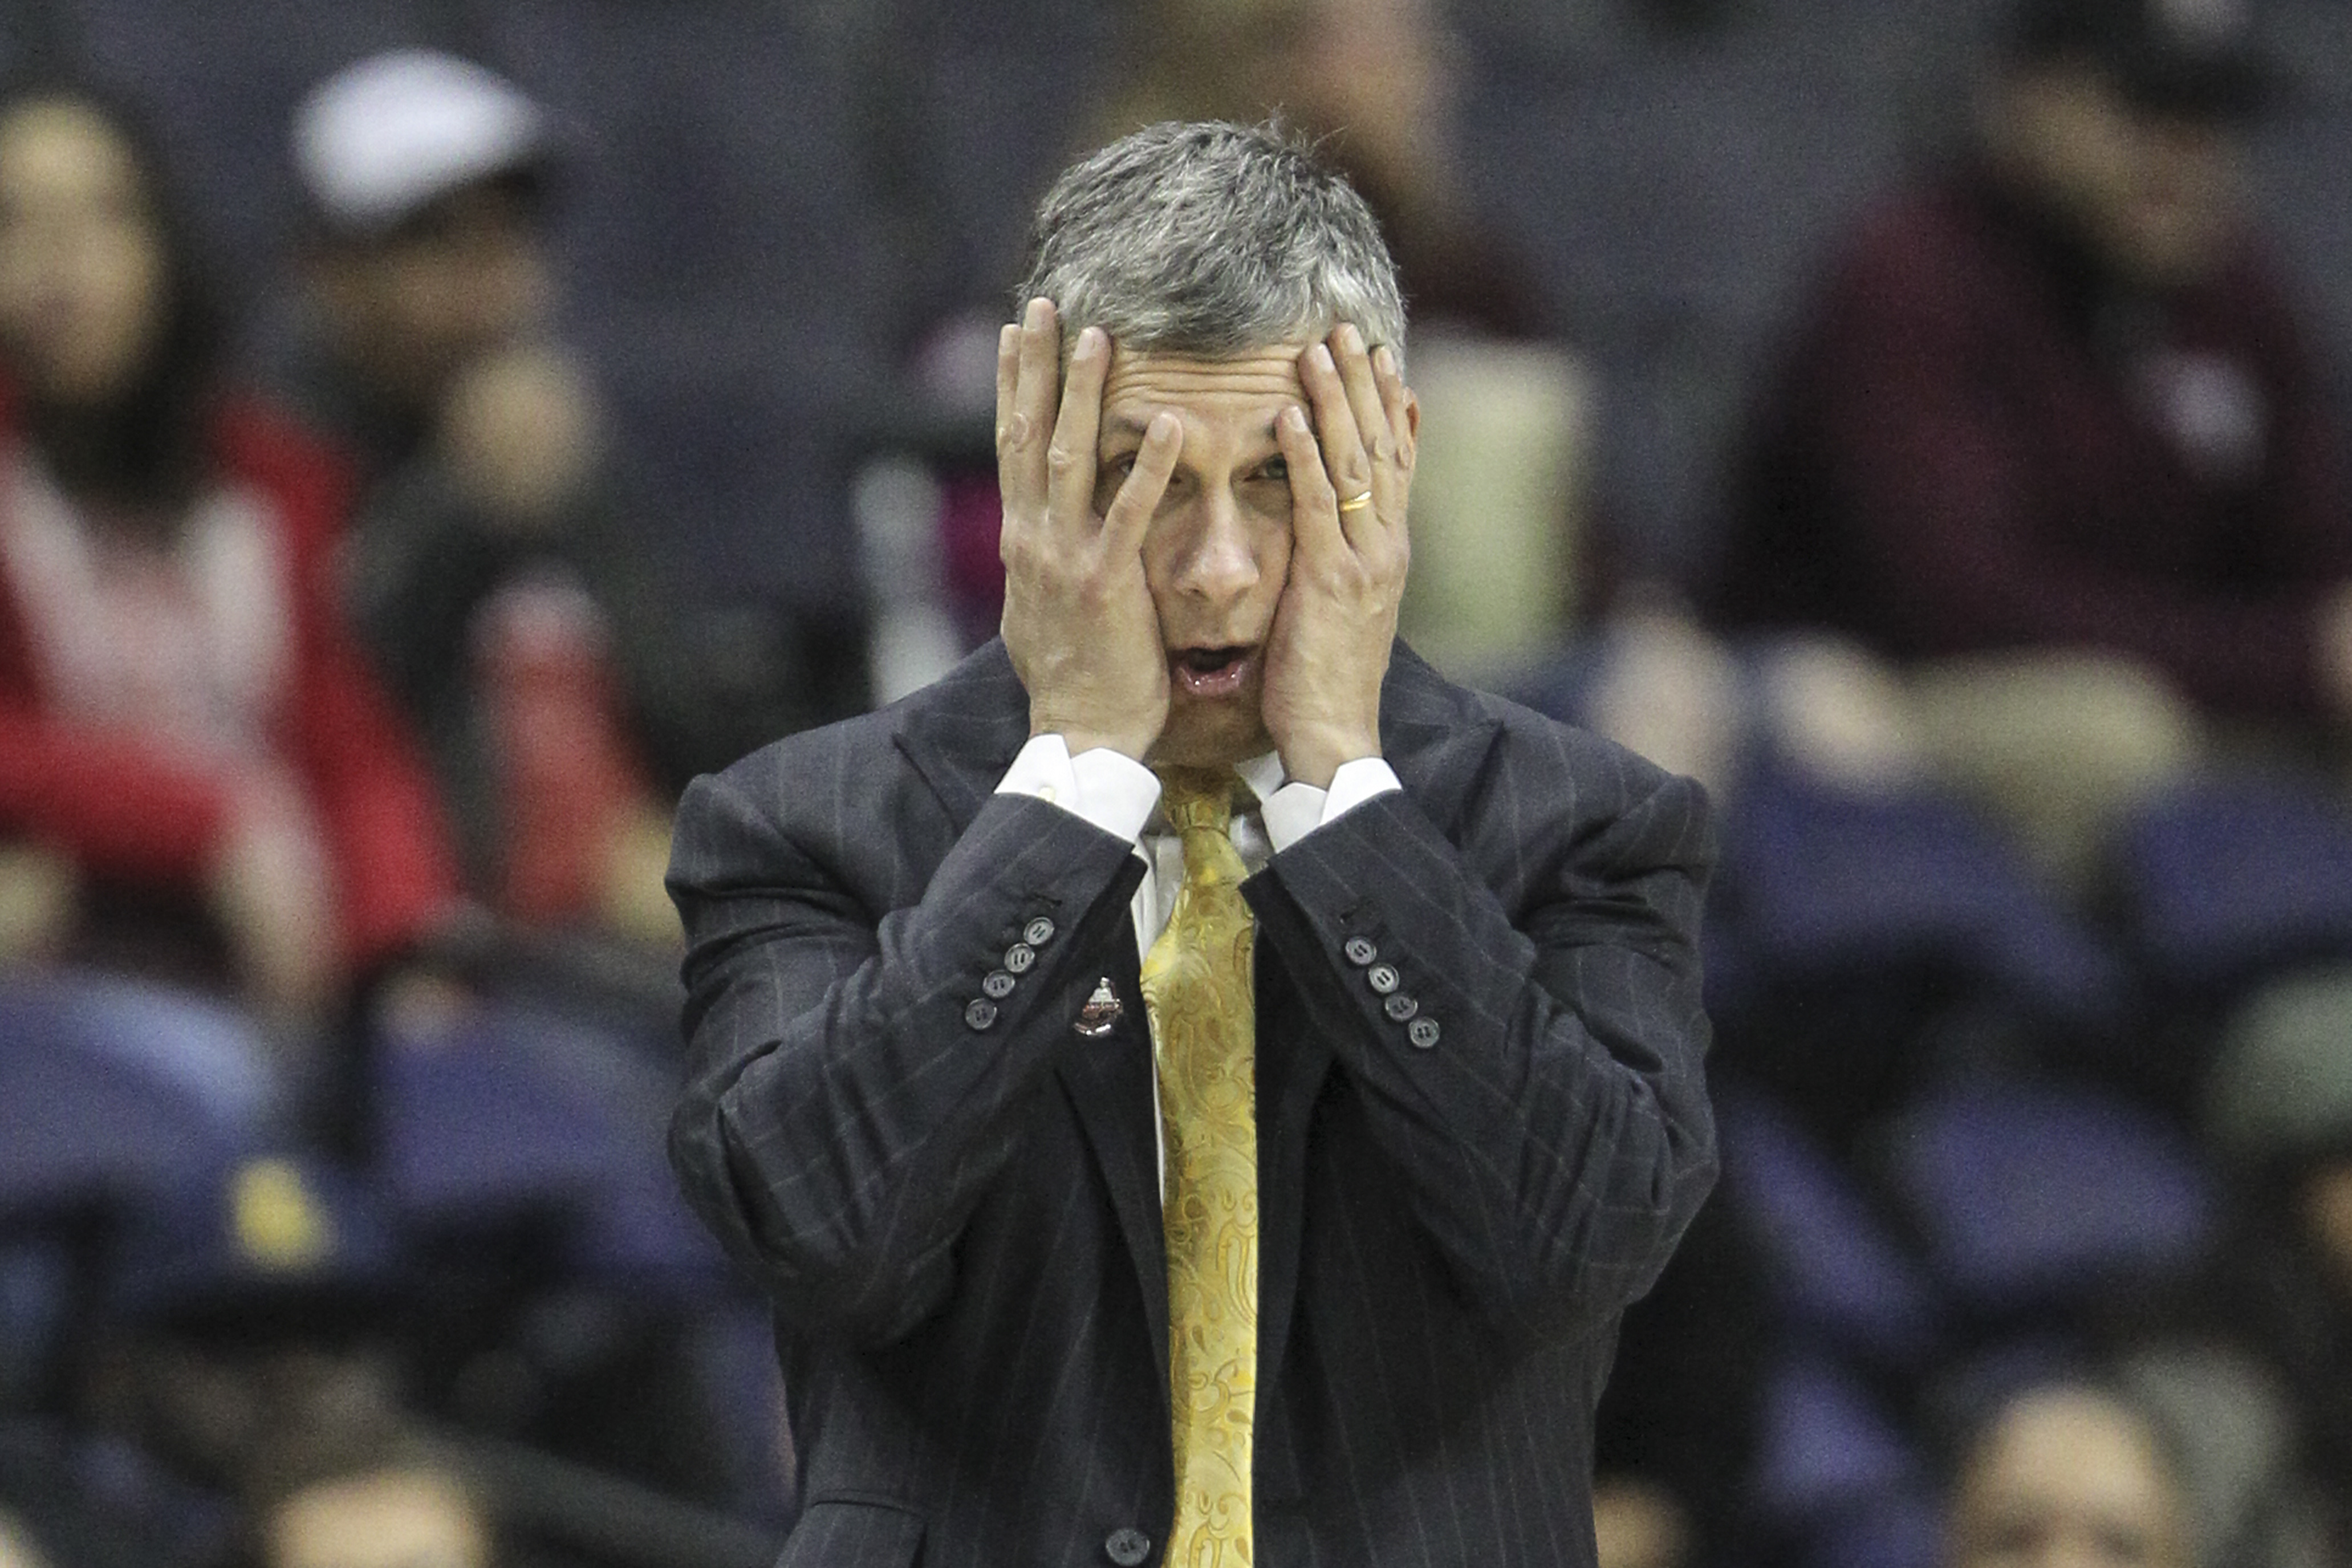 LaSalle´s head coach Dr. John Giannini covers his face down a few points against UMass during the 1st half of the A-10 tournament, first round, at the Capital One Arena, in Washington, DC, Wednesday, March 7, 2018. Umass beats LaSalle 69-67 to advance in the A-10 Tournament. STEVEN M. FALK / Staff Photographer